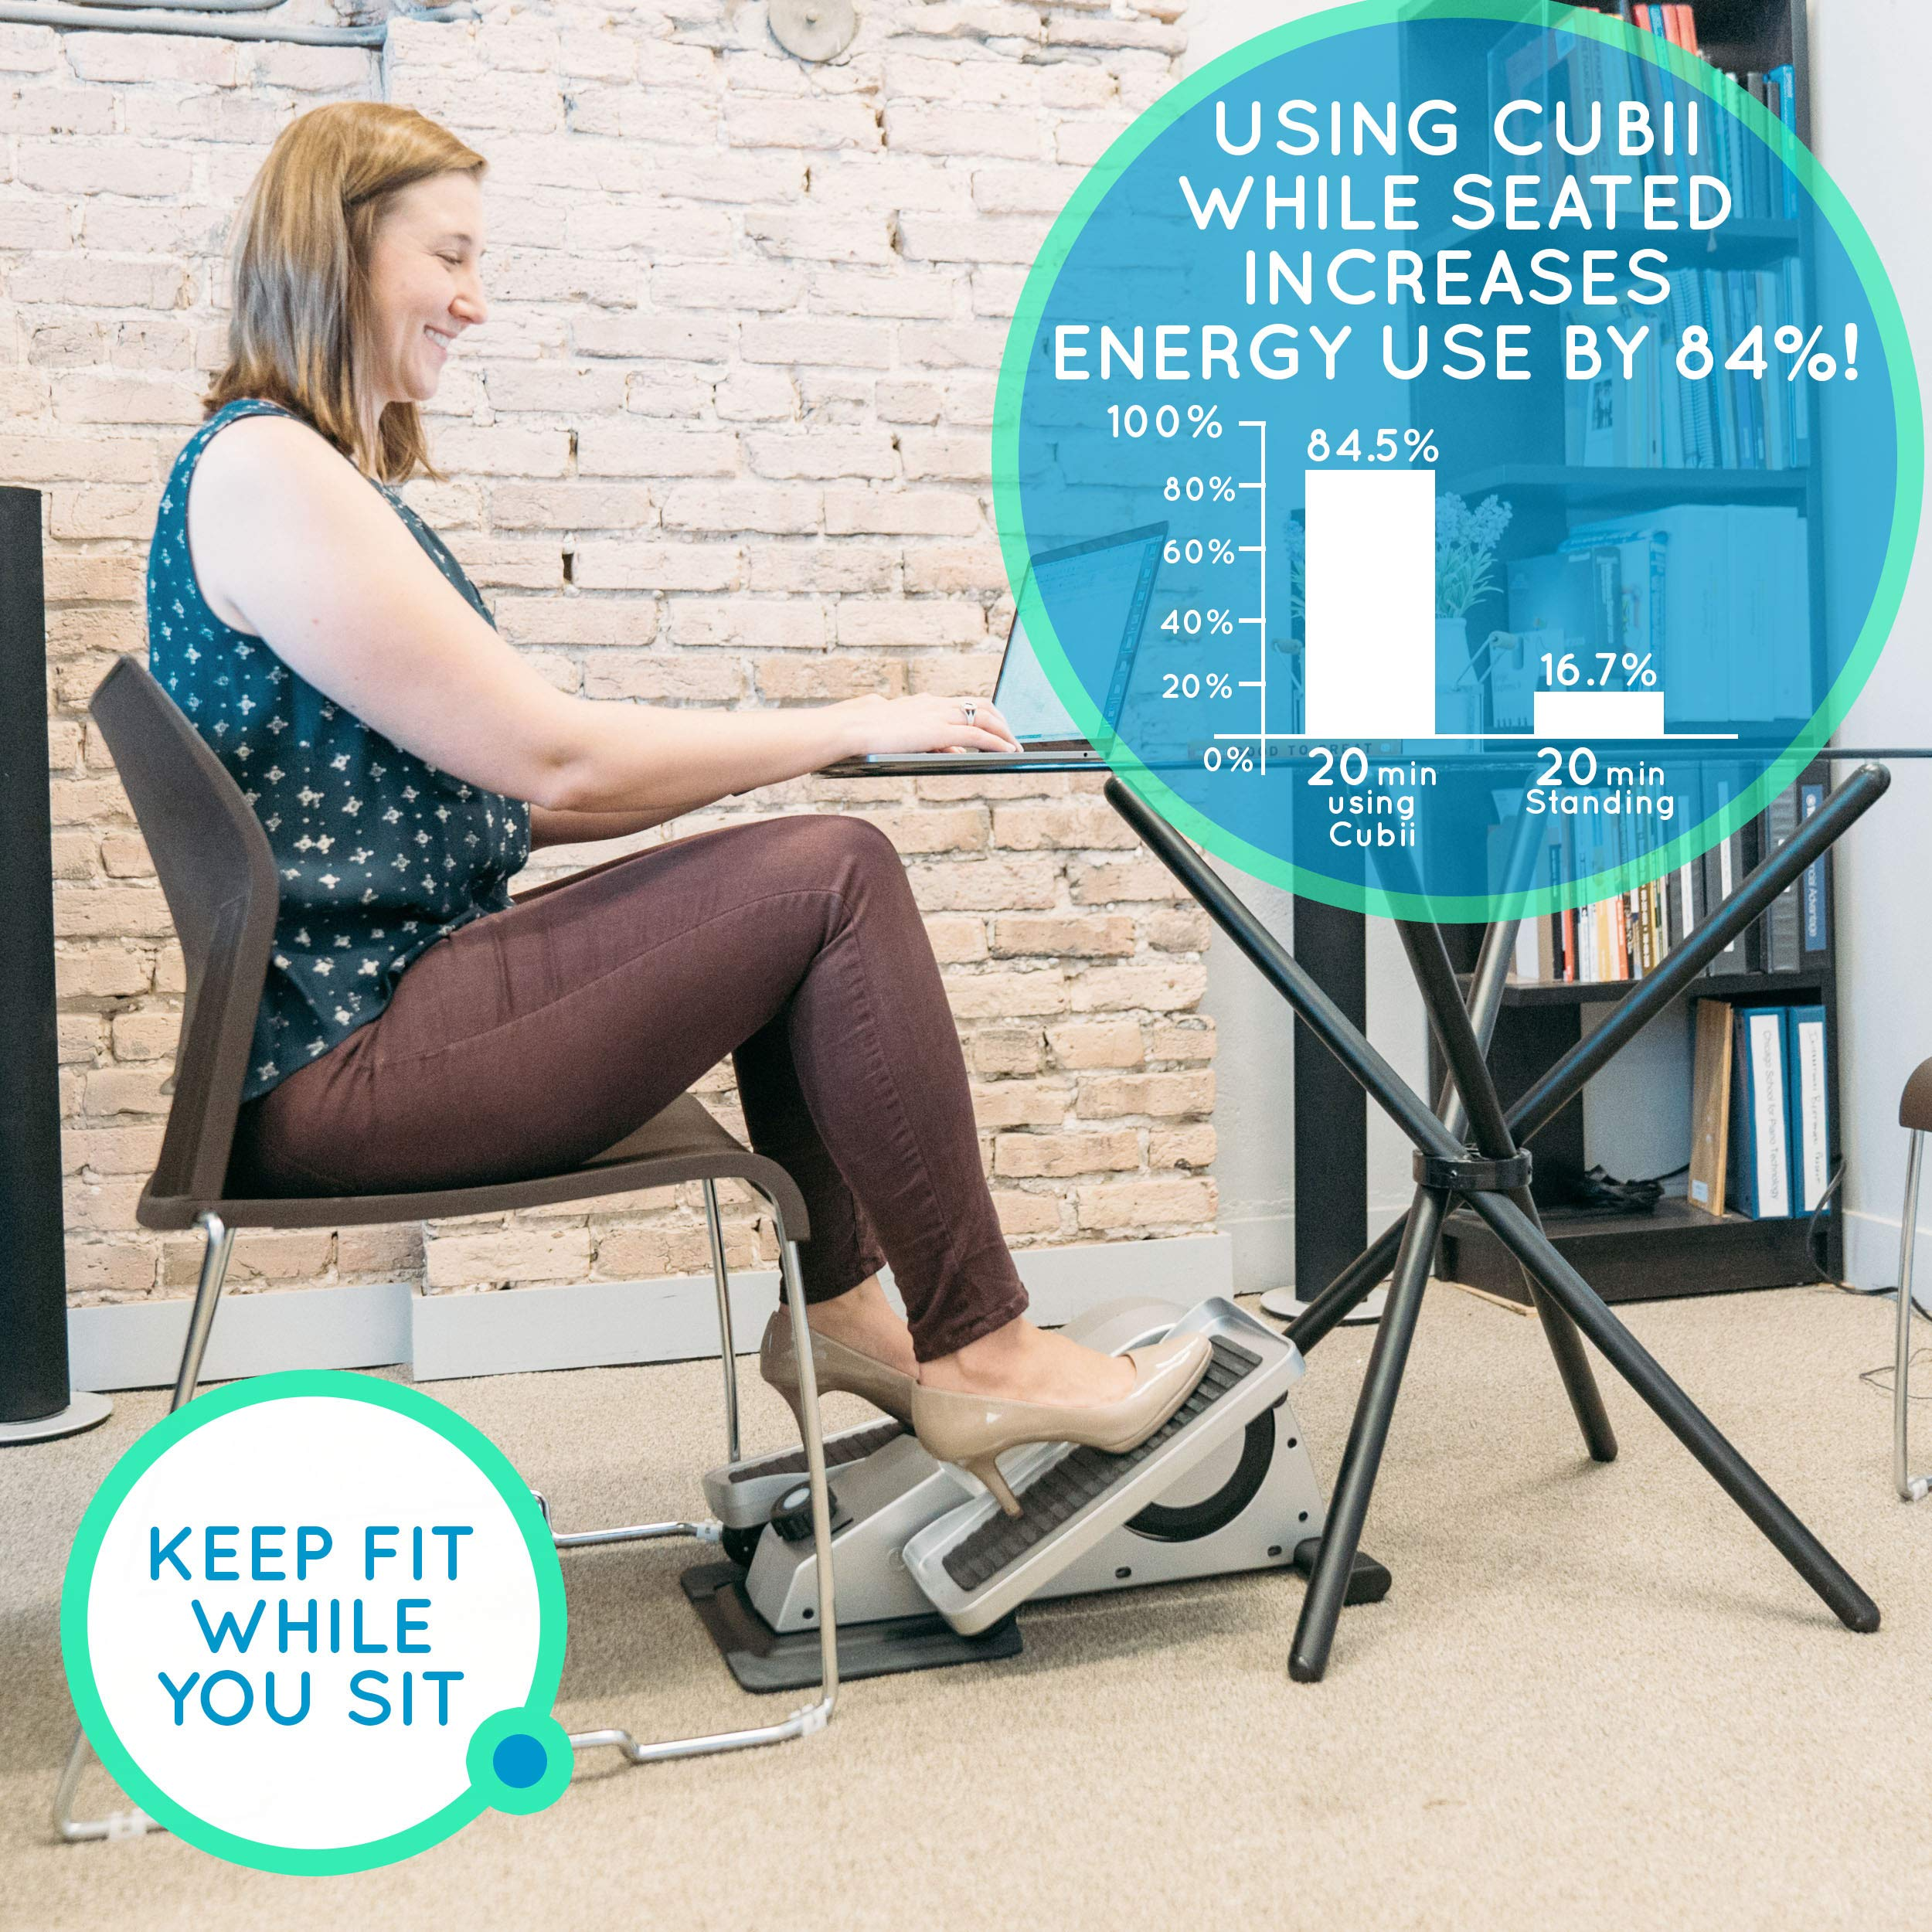 Cubii Under Desk Elliptical, Bluetooth Enabled, Sync w/ FitBit and HealthKit, Adjustable Resistance, Easy Assembly by Cubii (Image #4)